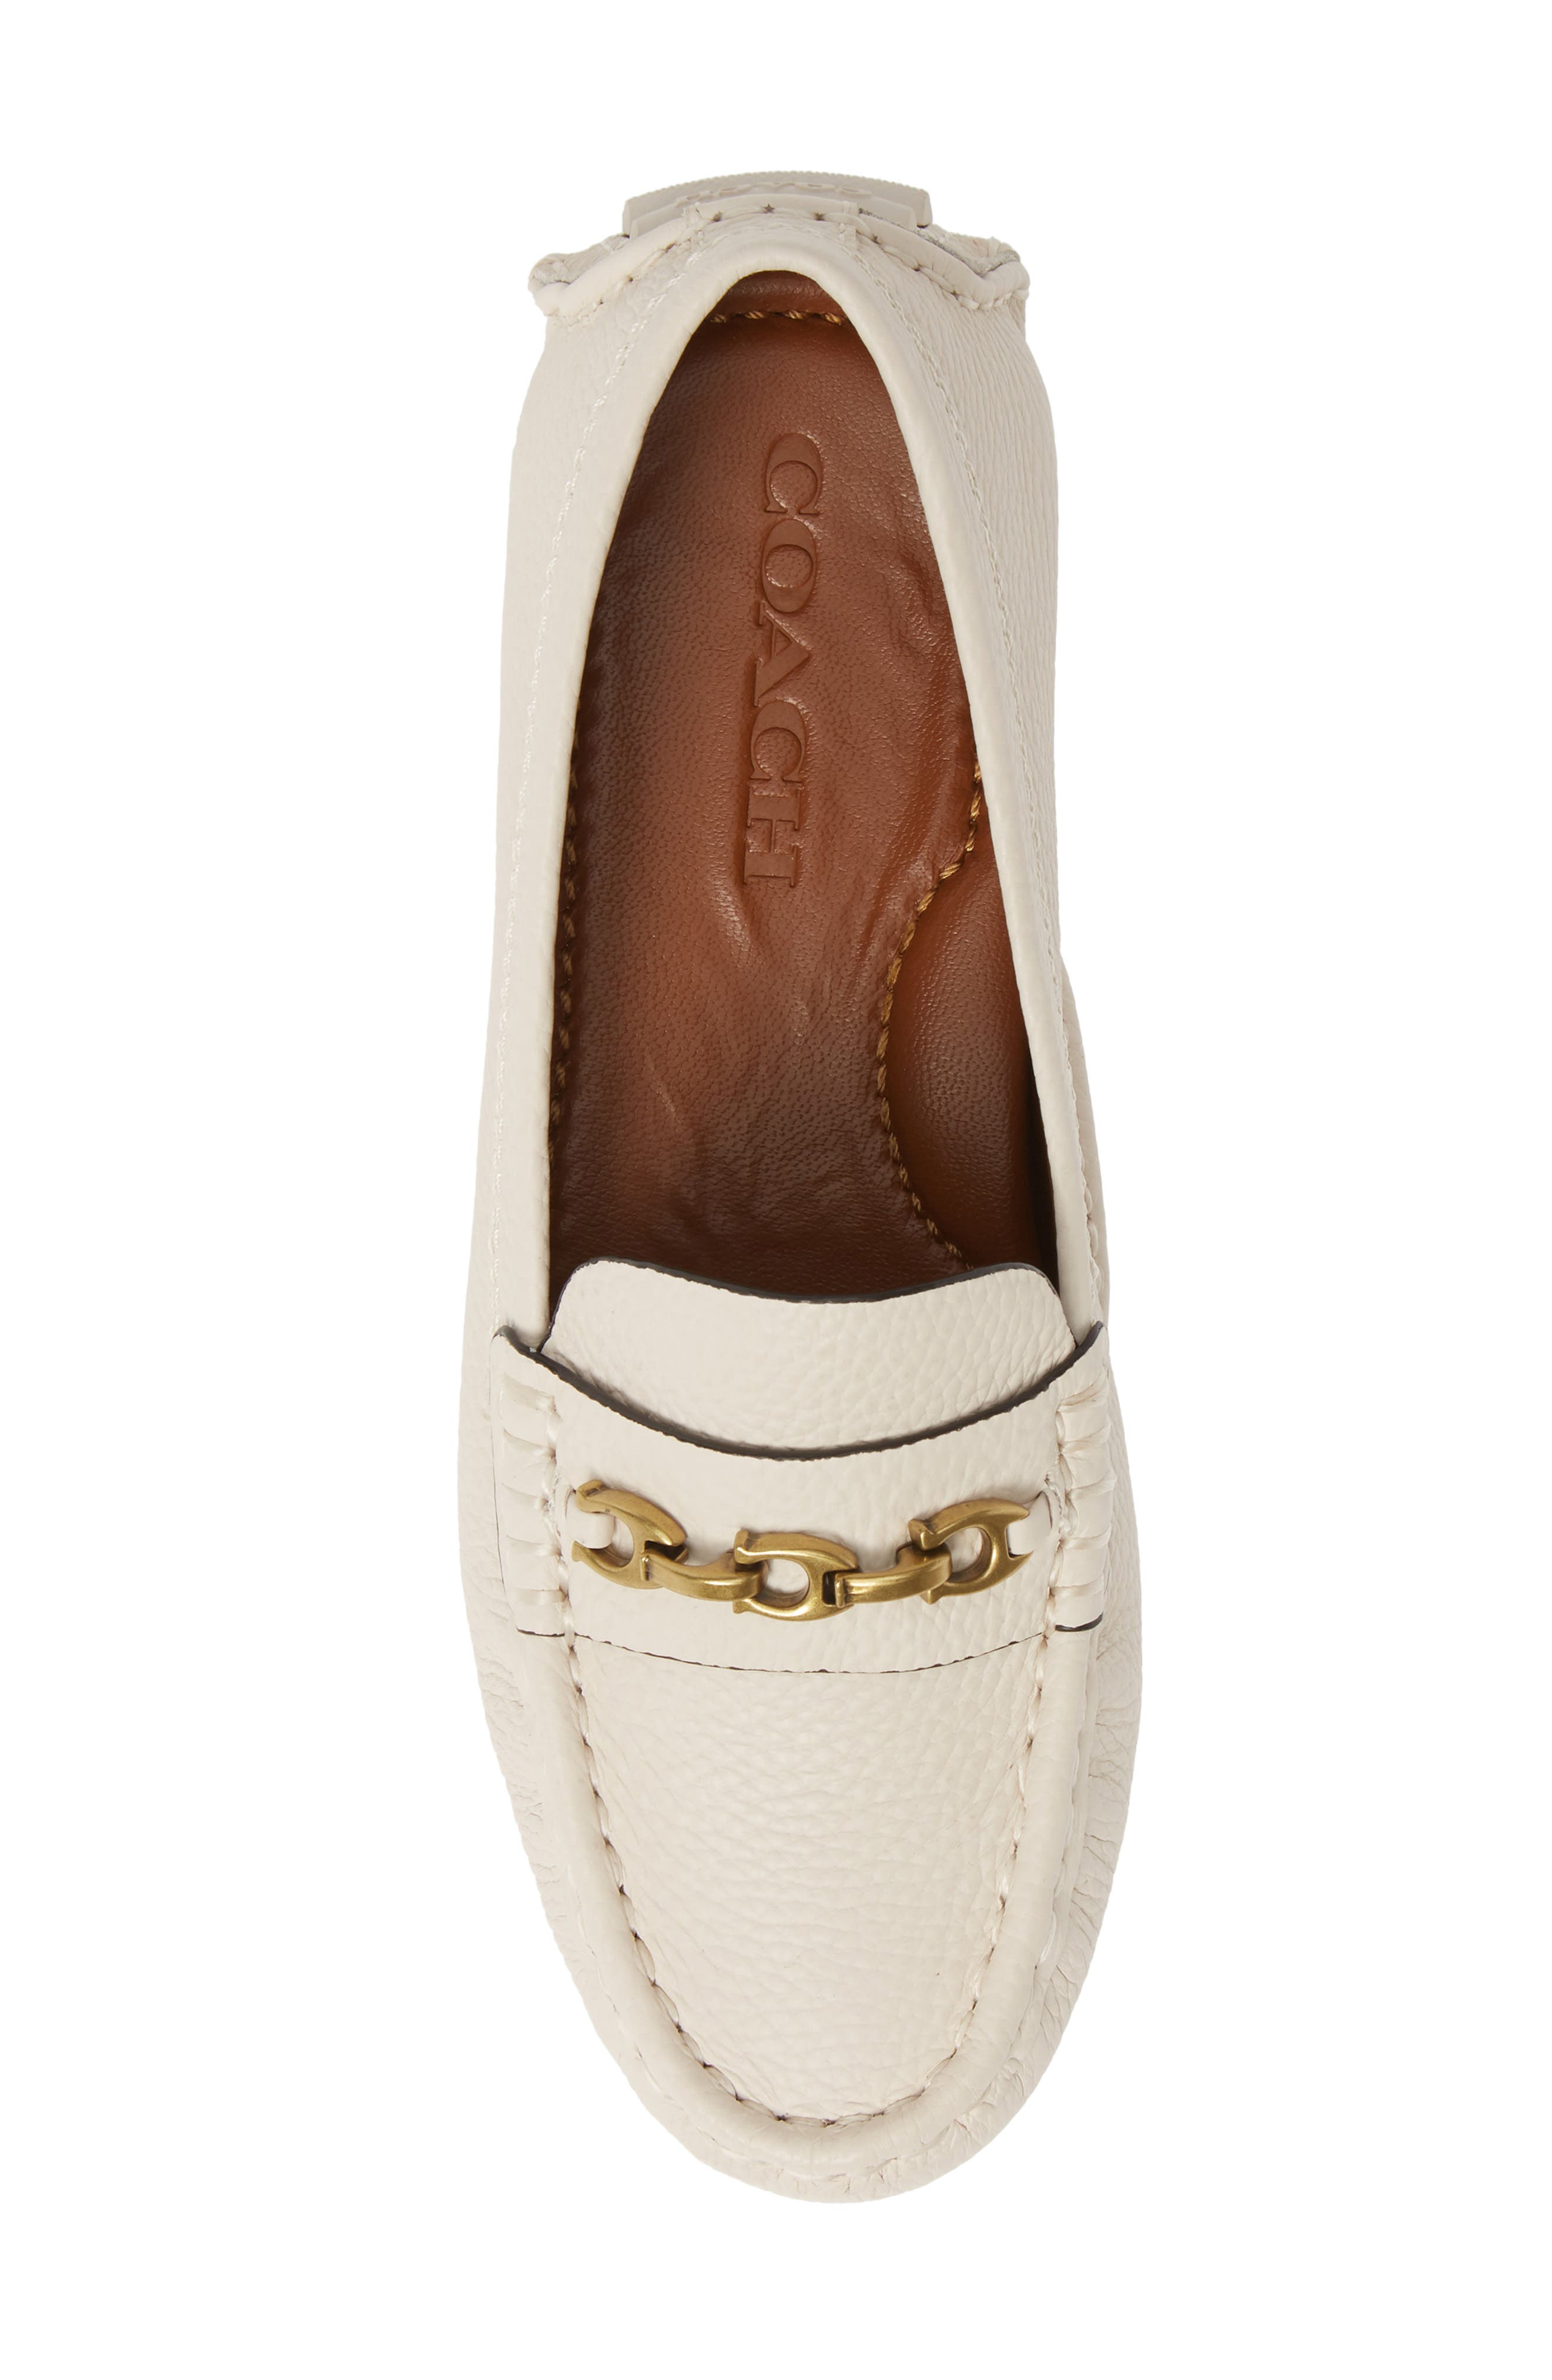 COACH,                             Crosby Driver Loafer,                             Alternate thumbnail 5, color,                             CHALK LEATHER